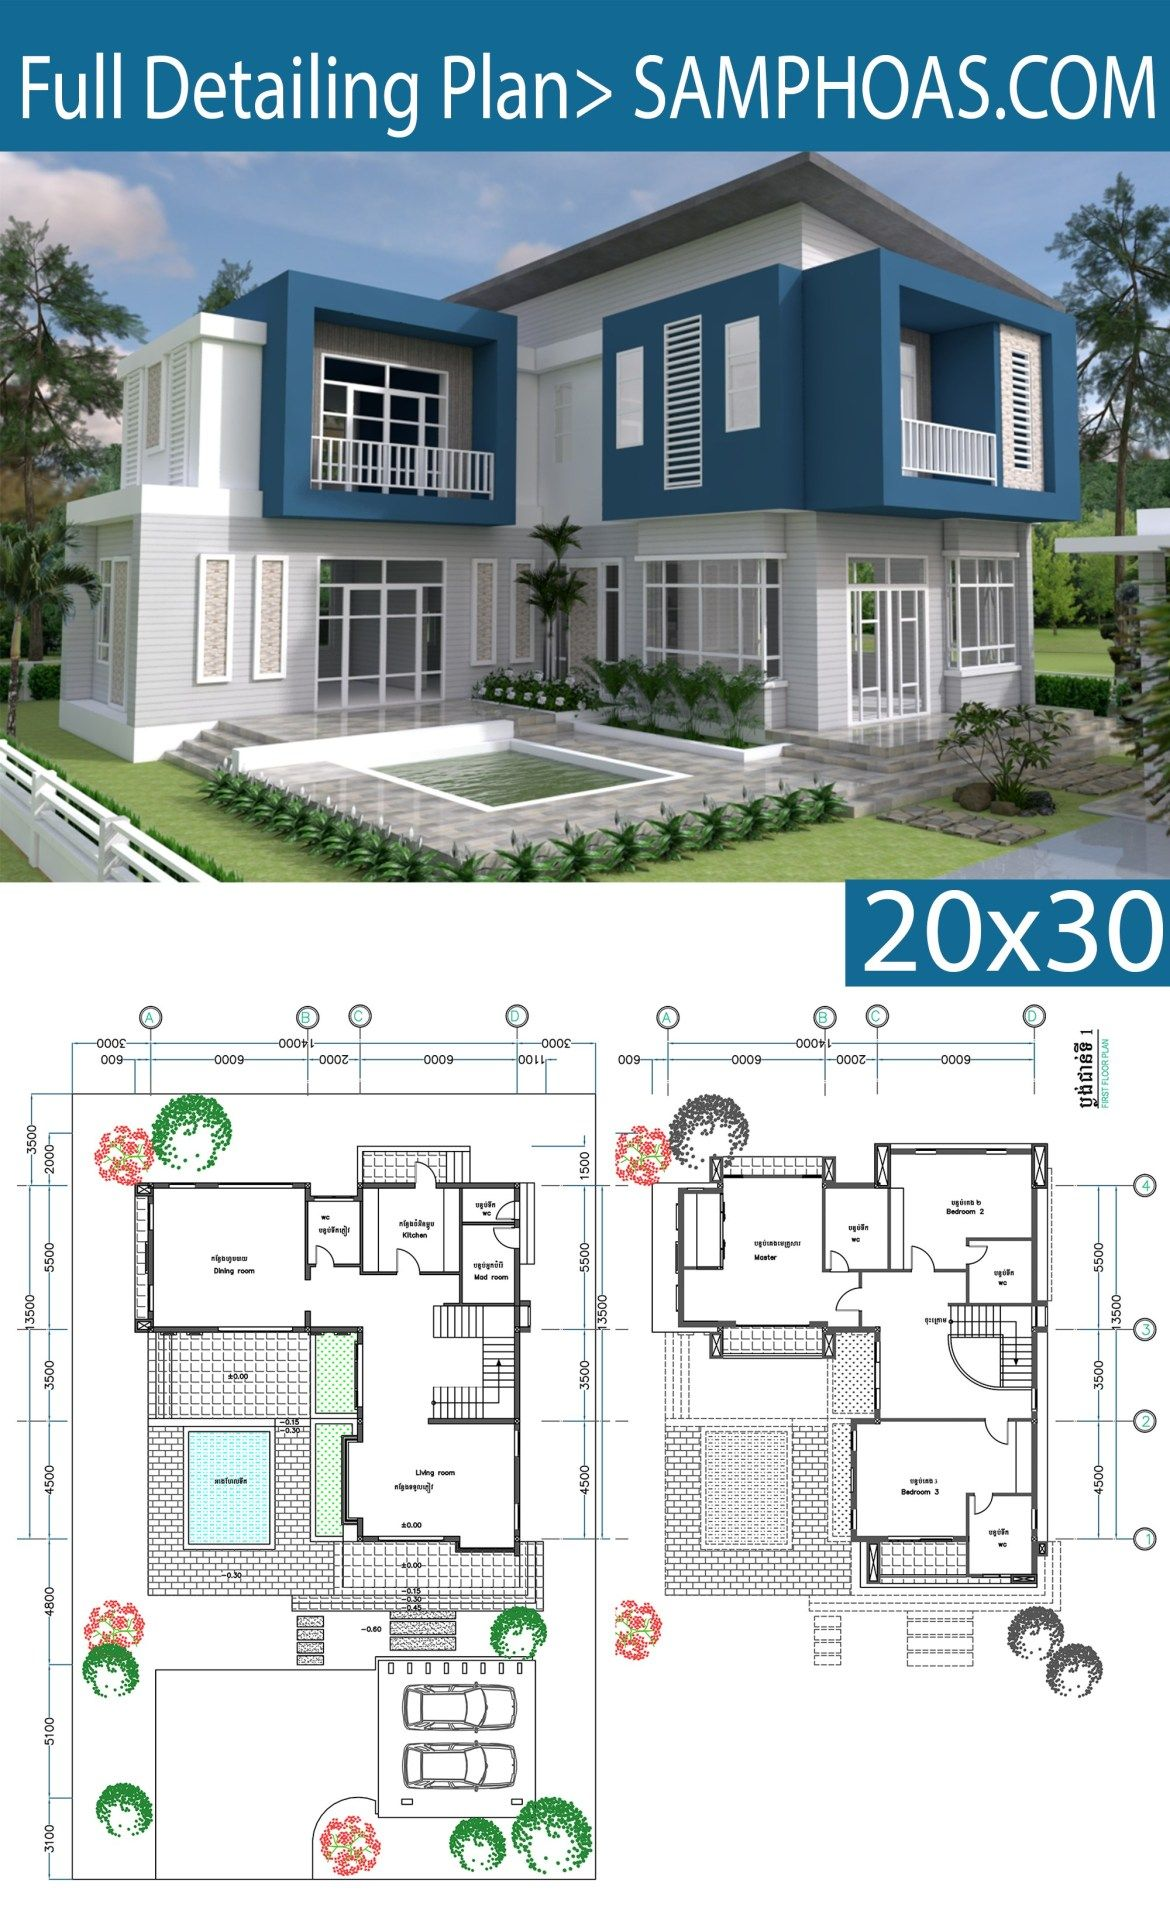 3 Bedrooms Modern Home Plan 14x13 5m Samphoas Plansearch Modern House Plans Modern House Design House Plans